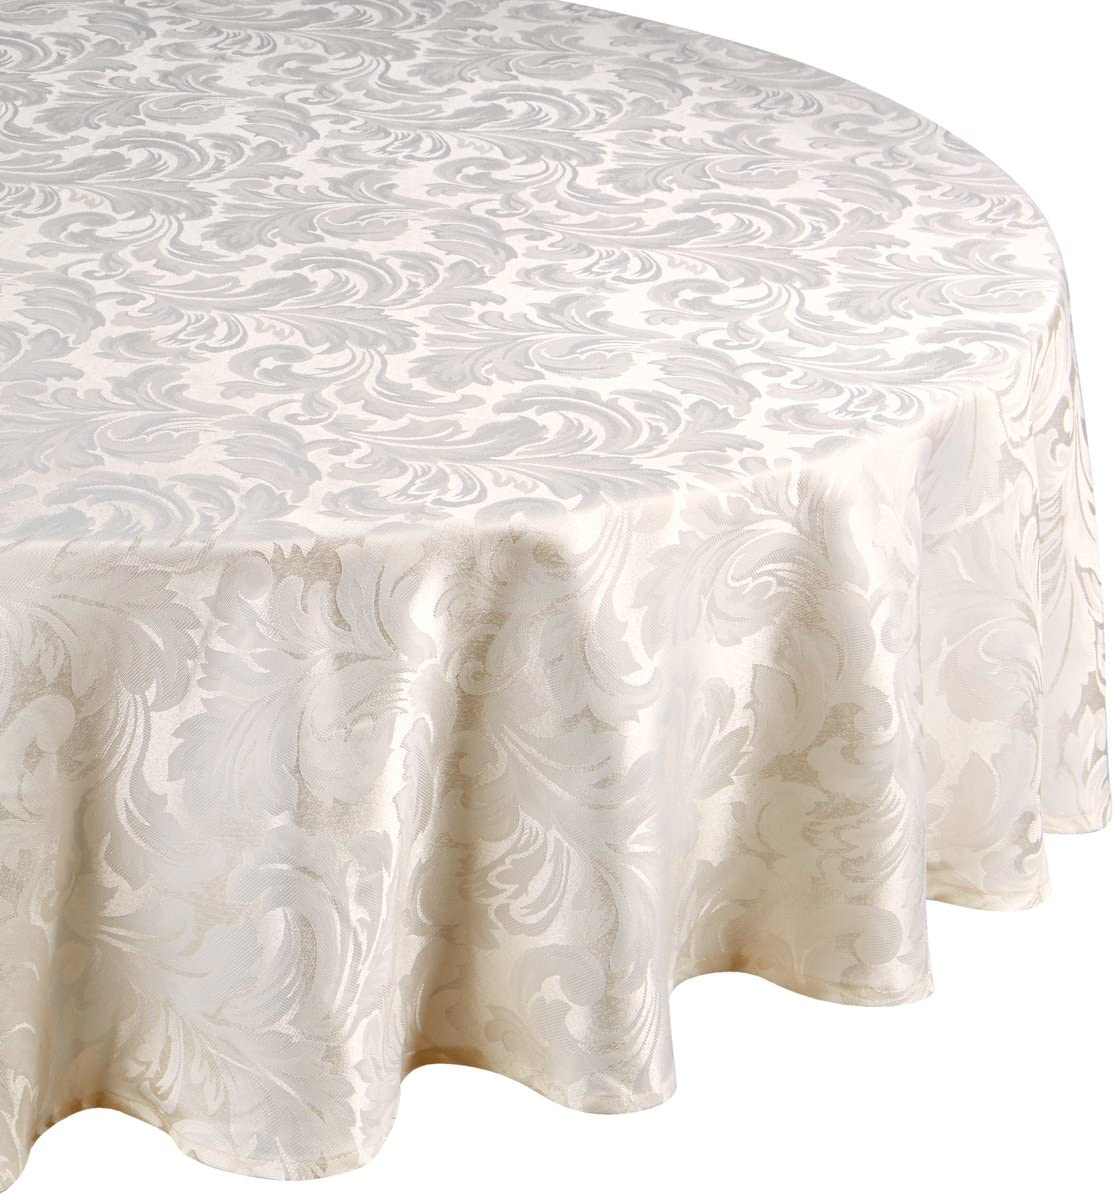 """183cms diameter available in White//Cream A Round//Circular Lace Tablecloth 72/"""""""